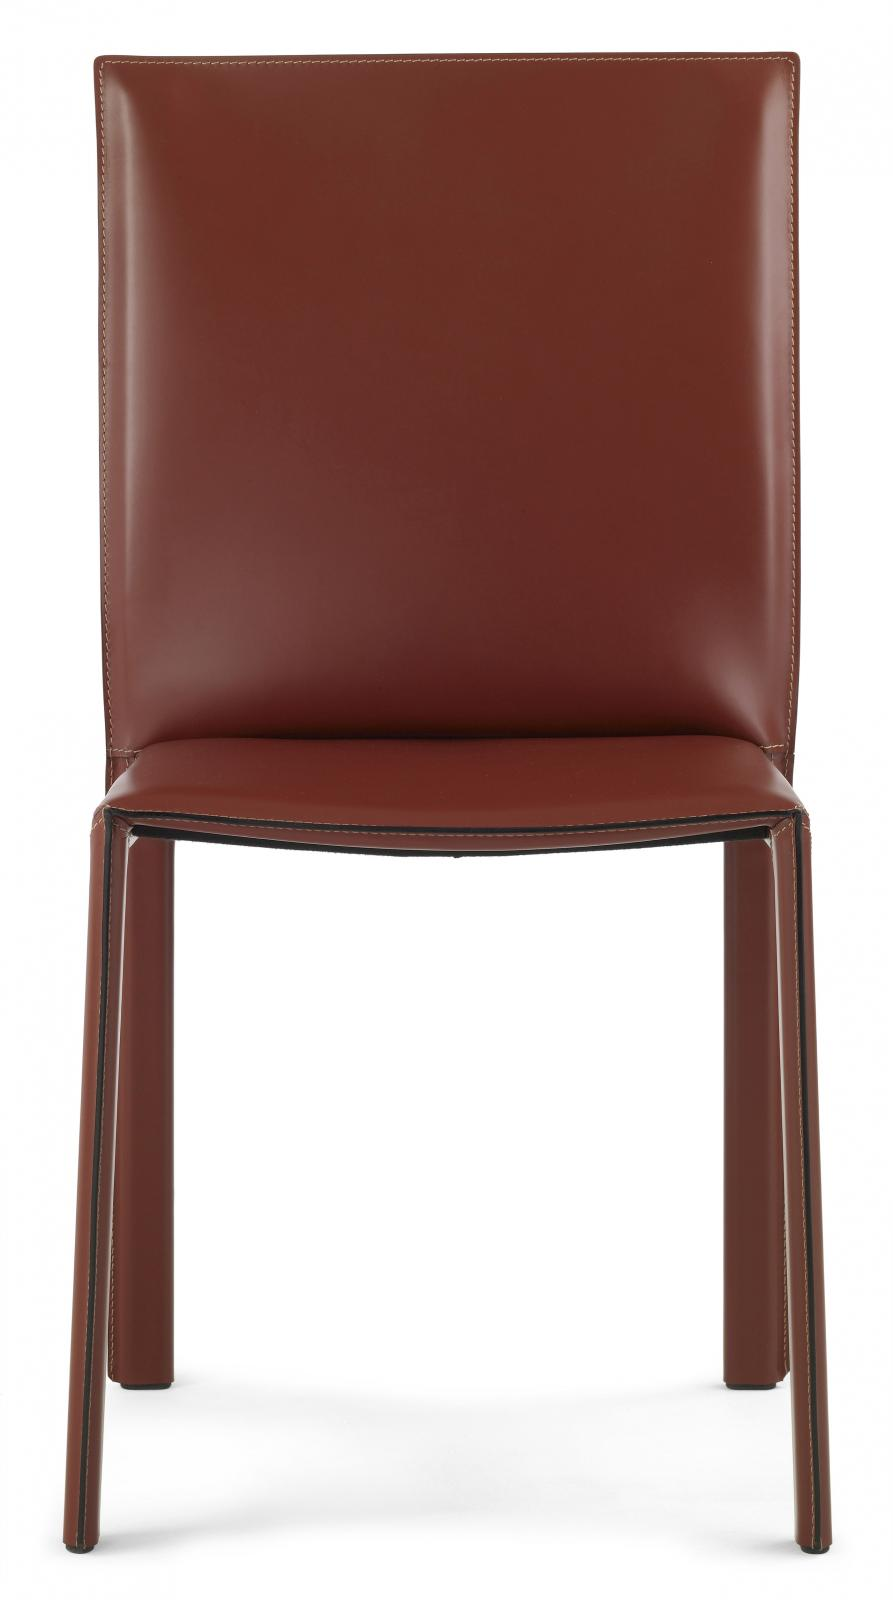 modern-leather-chairs-italian-furniture (26).jpg